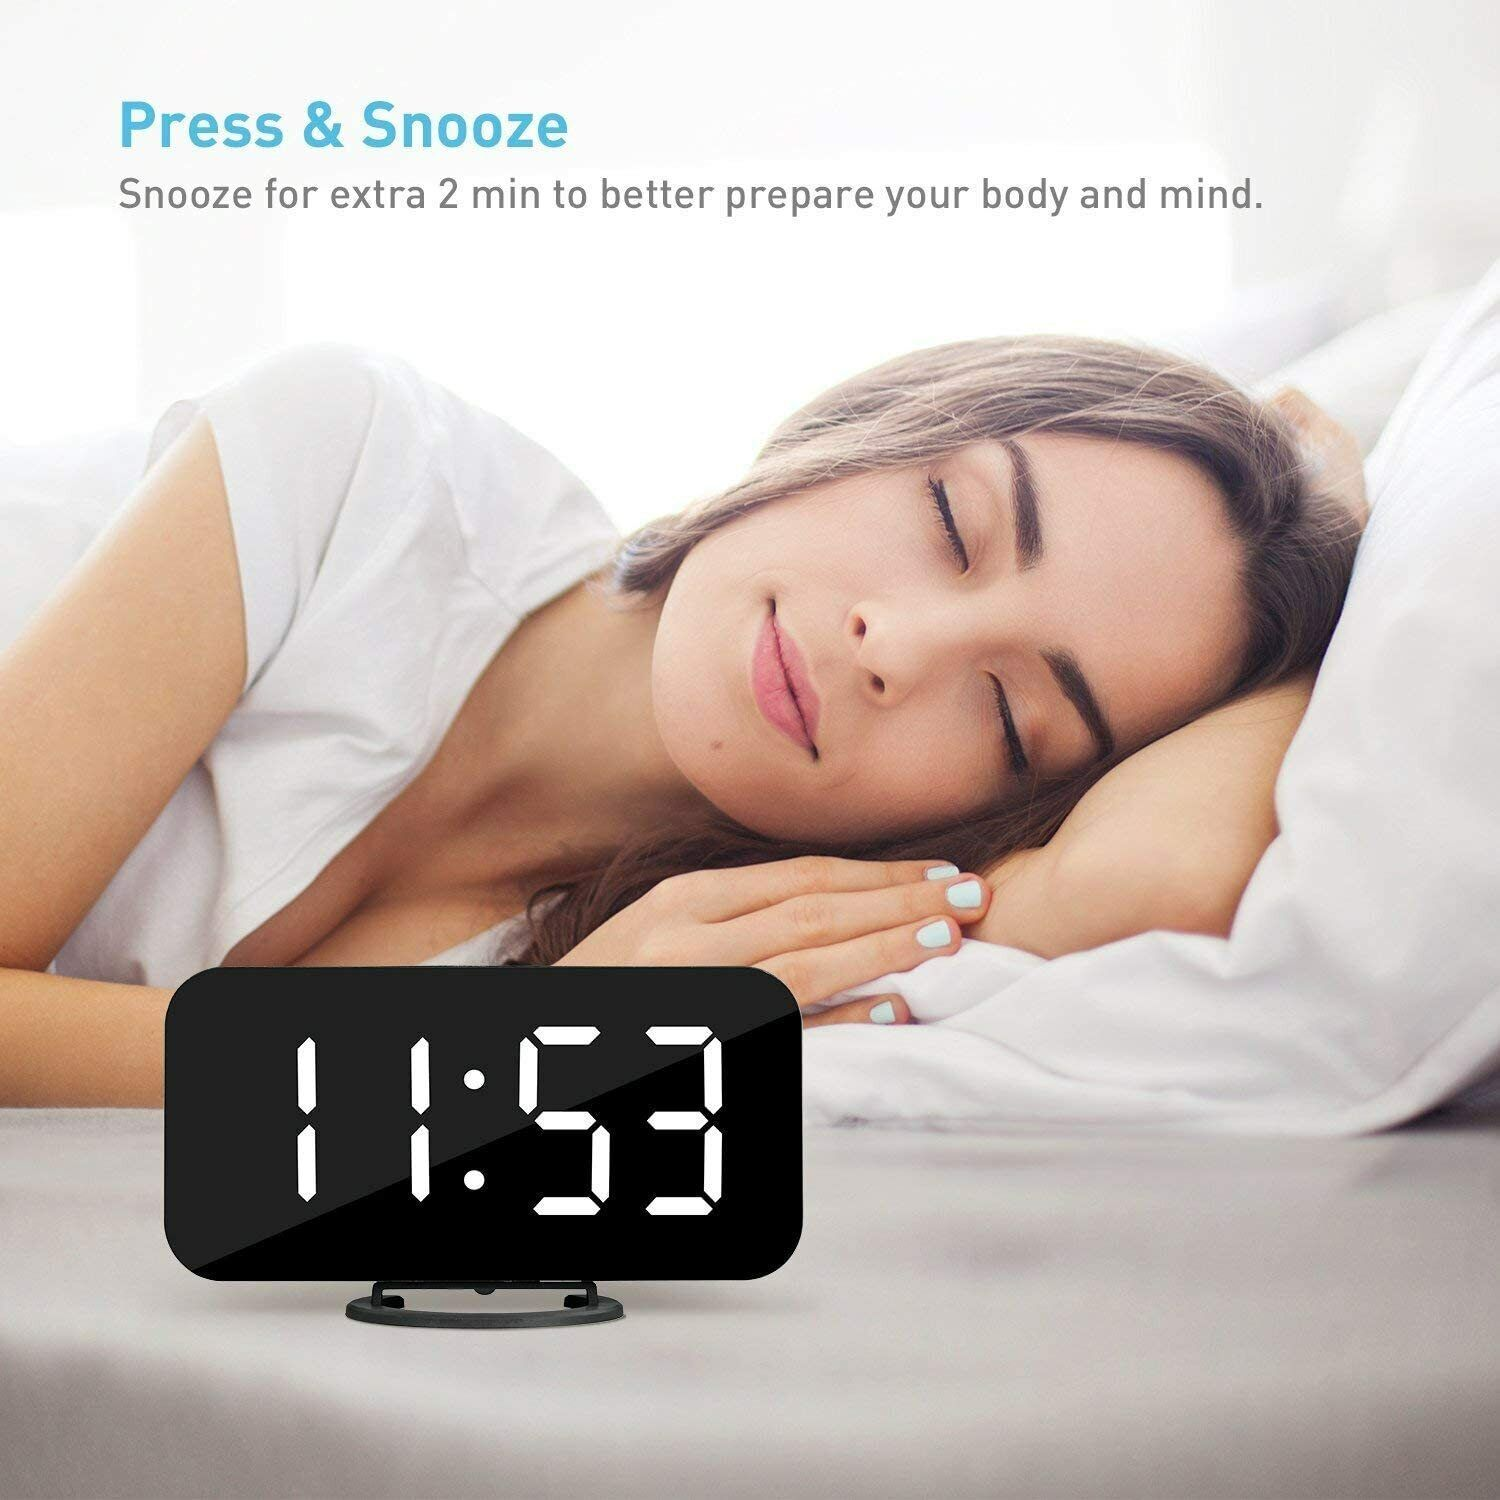 Diming Mode Easy Snooze Function Dual USB Charging Ports for Bedroom Living Room Office Mirror Surface Travel LED Digital Alarm Clock with Large 6.5 Easy-Read Display